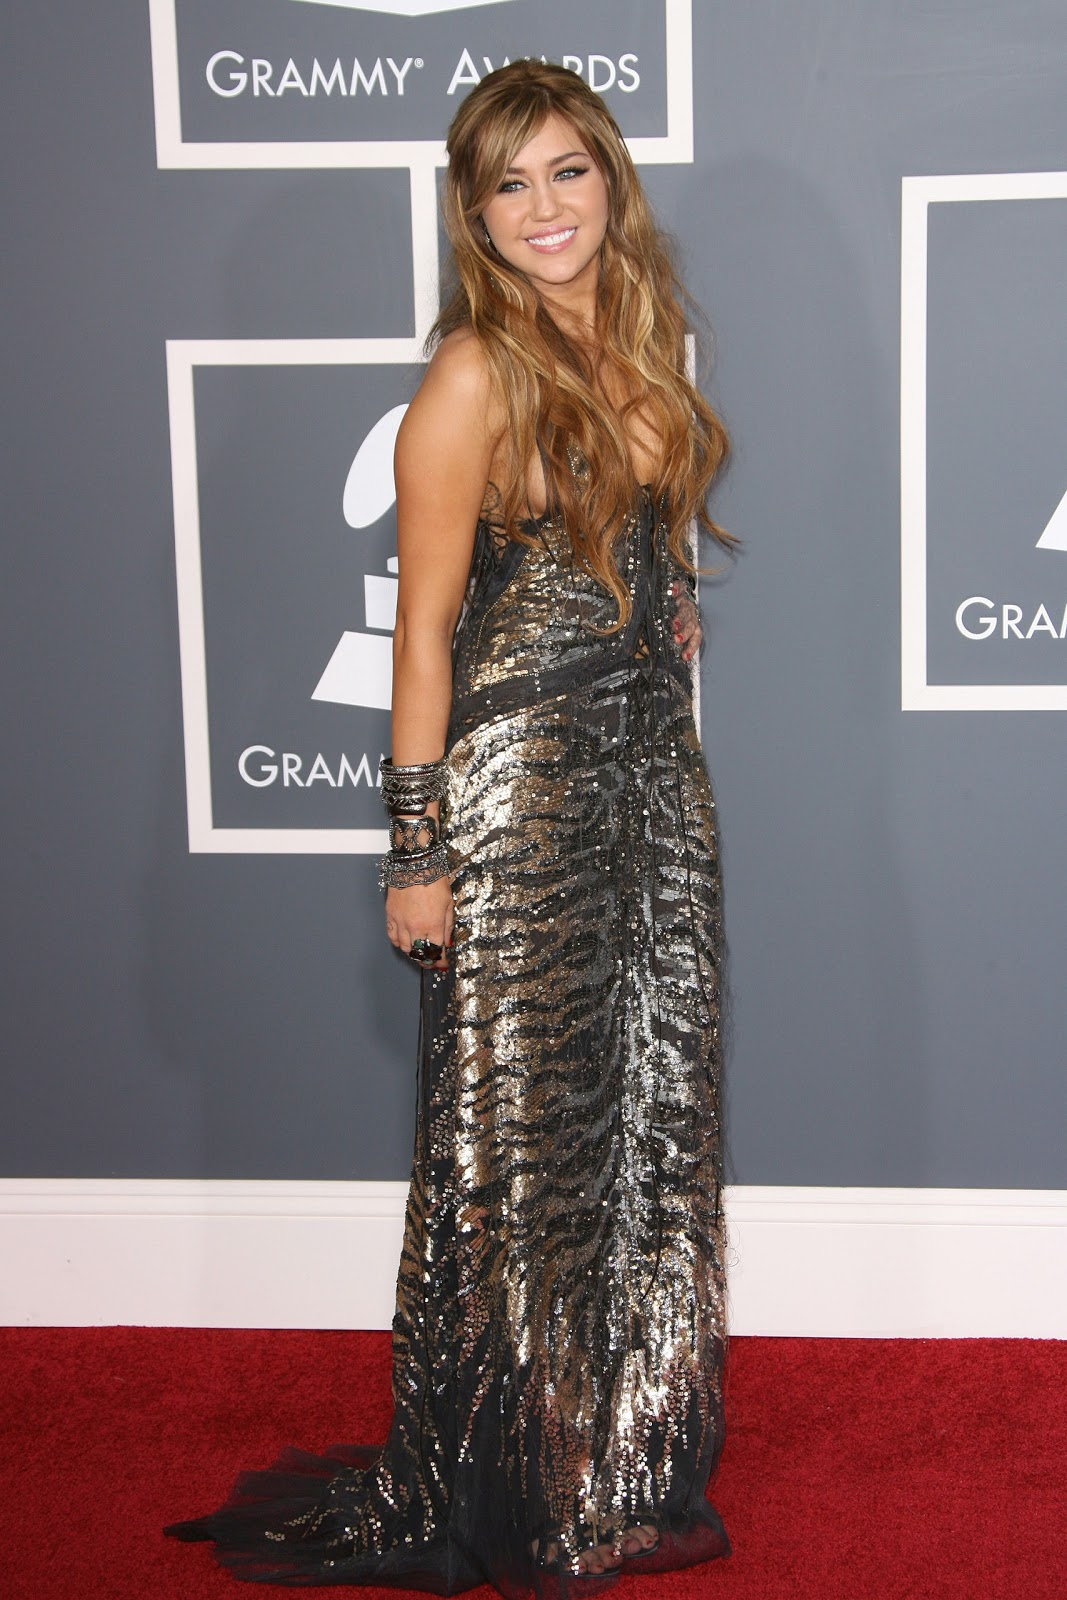 Miley Cyrus Alfombra Roja Miley Cyrus Around The World Alfombra Roja Show Y